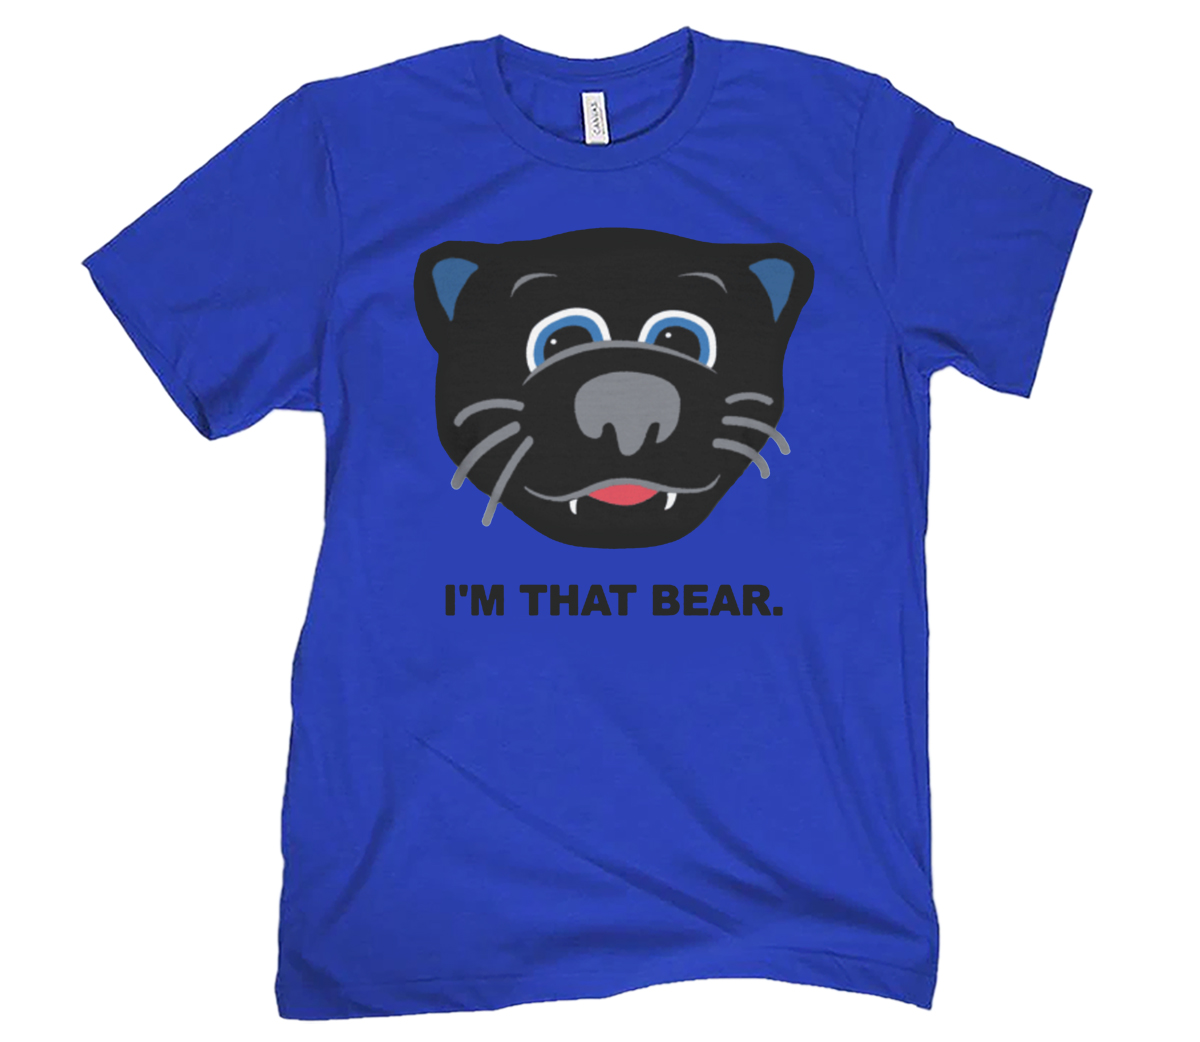 2020 Carolina Panthers I'm That Bear Shirt